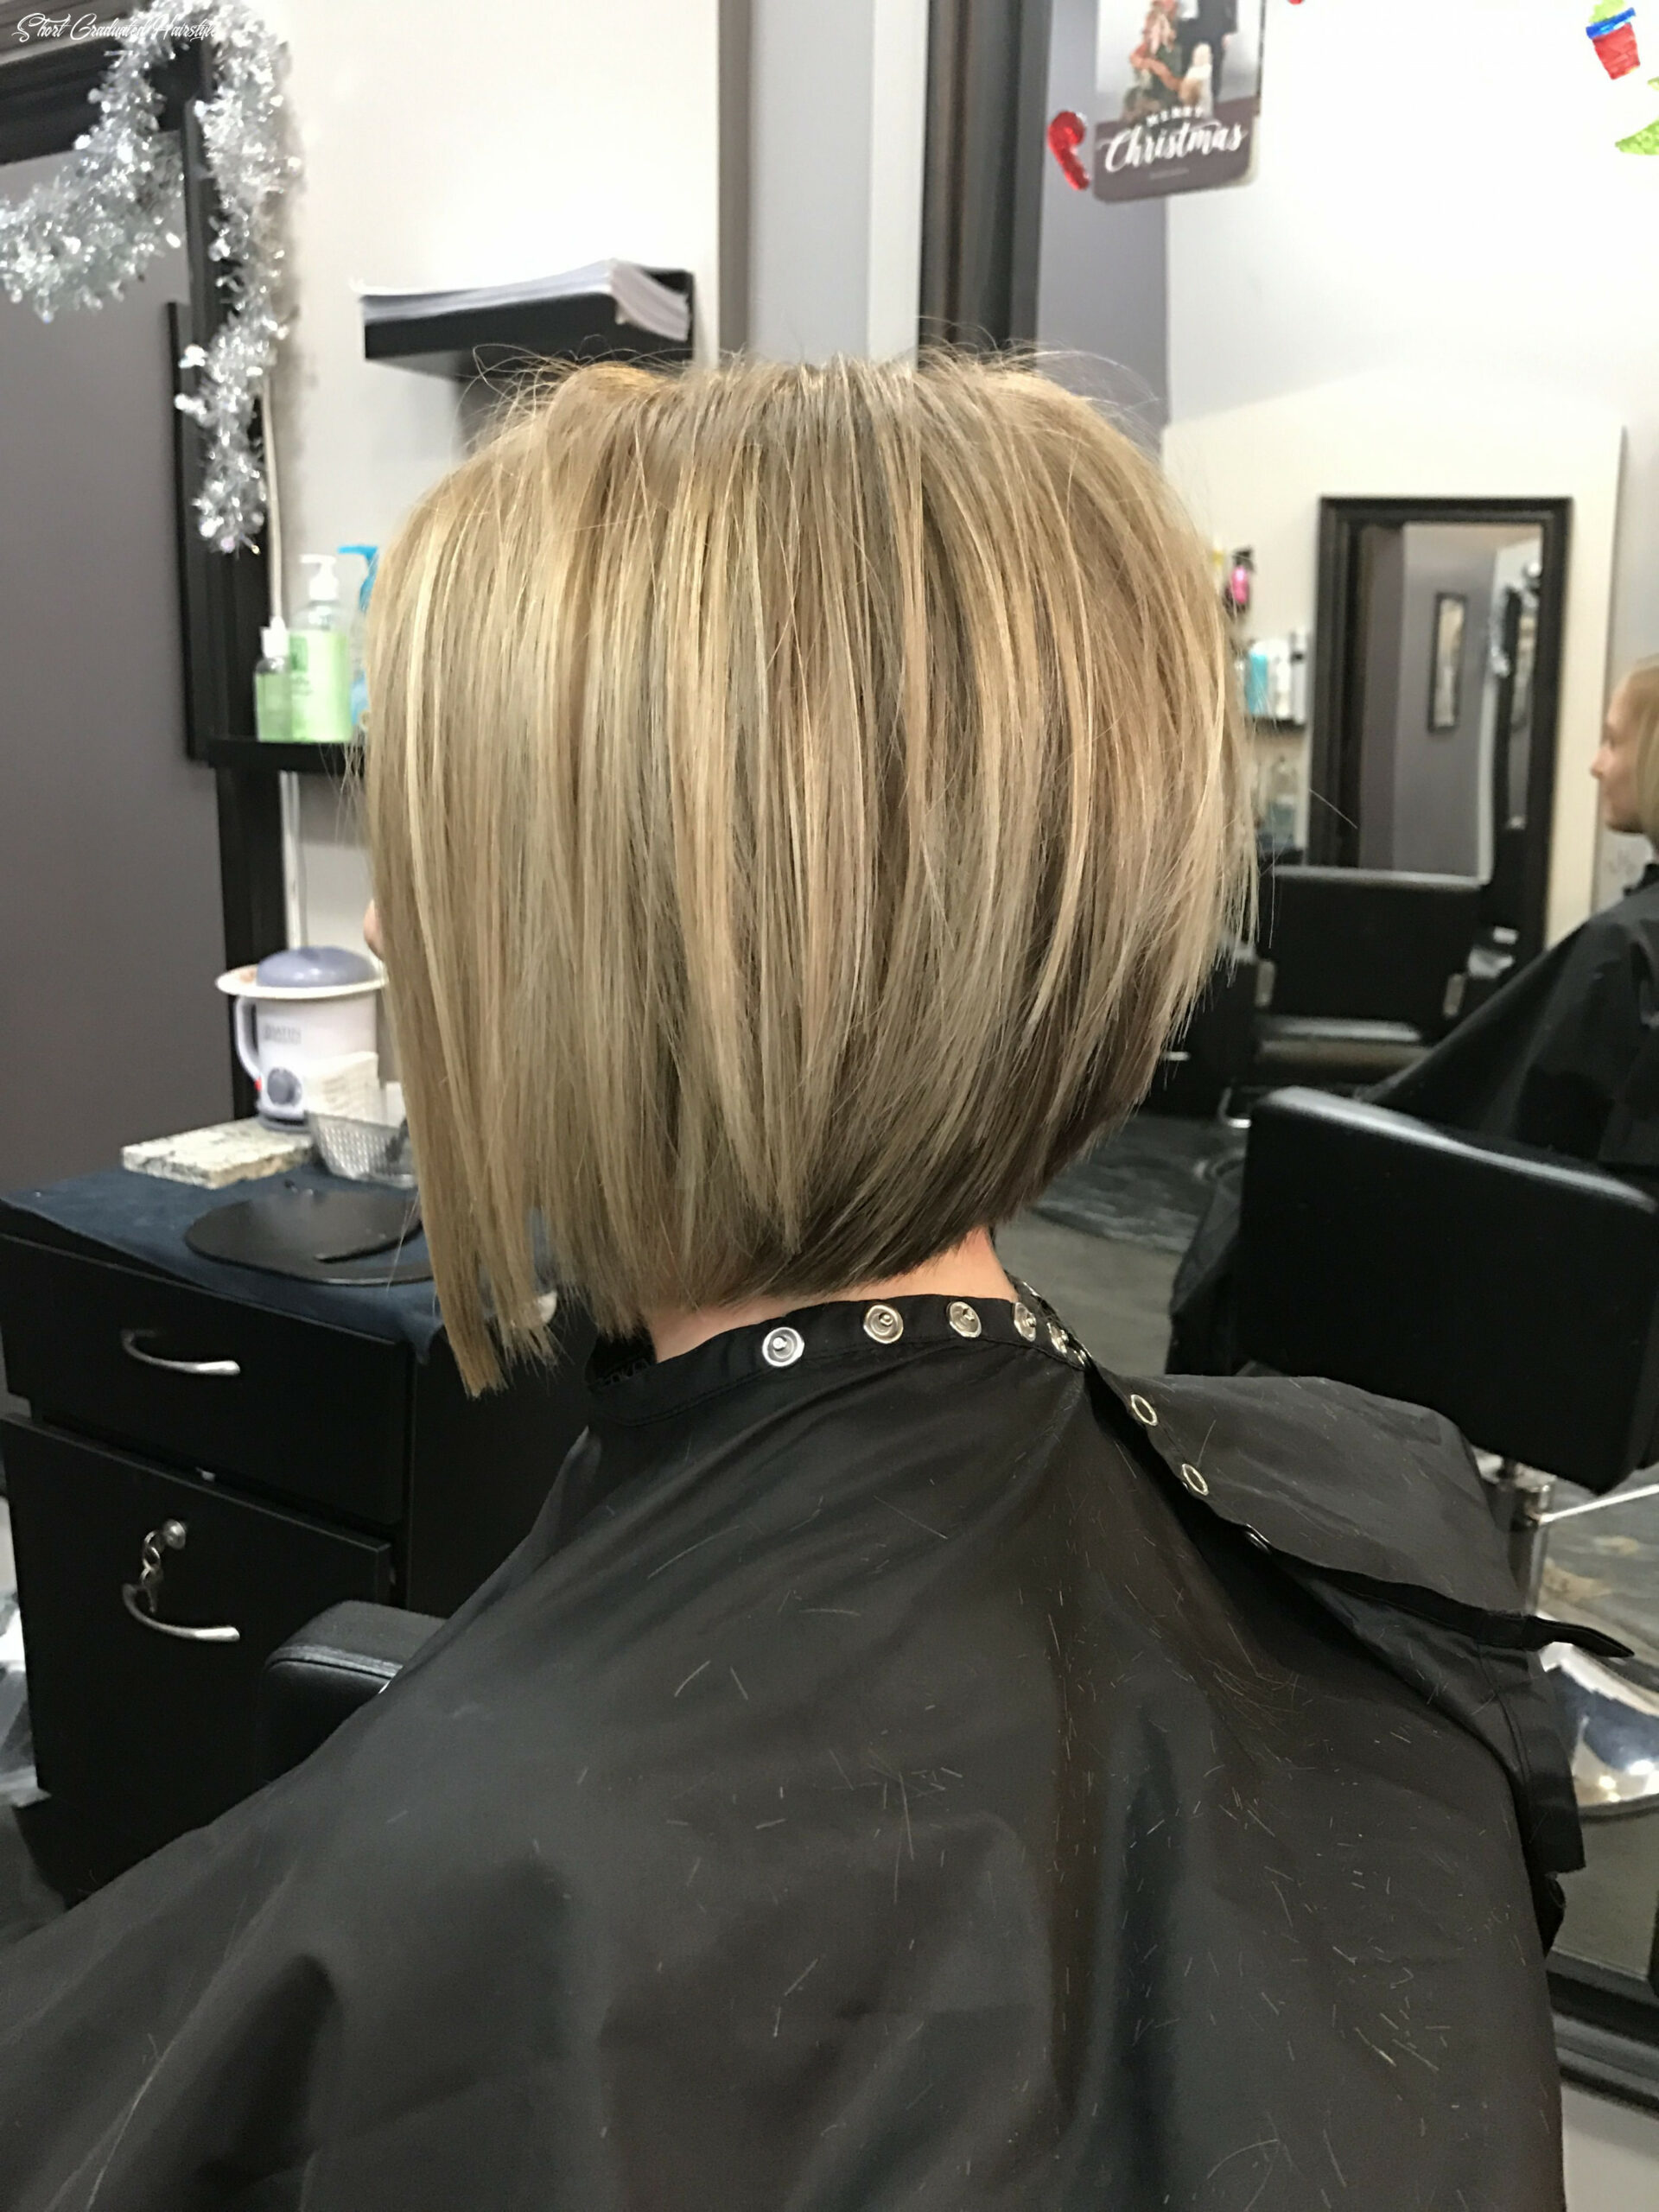 Short graduated bob created by geneva rygel | hair makeover